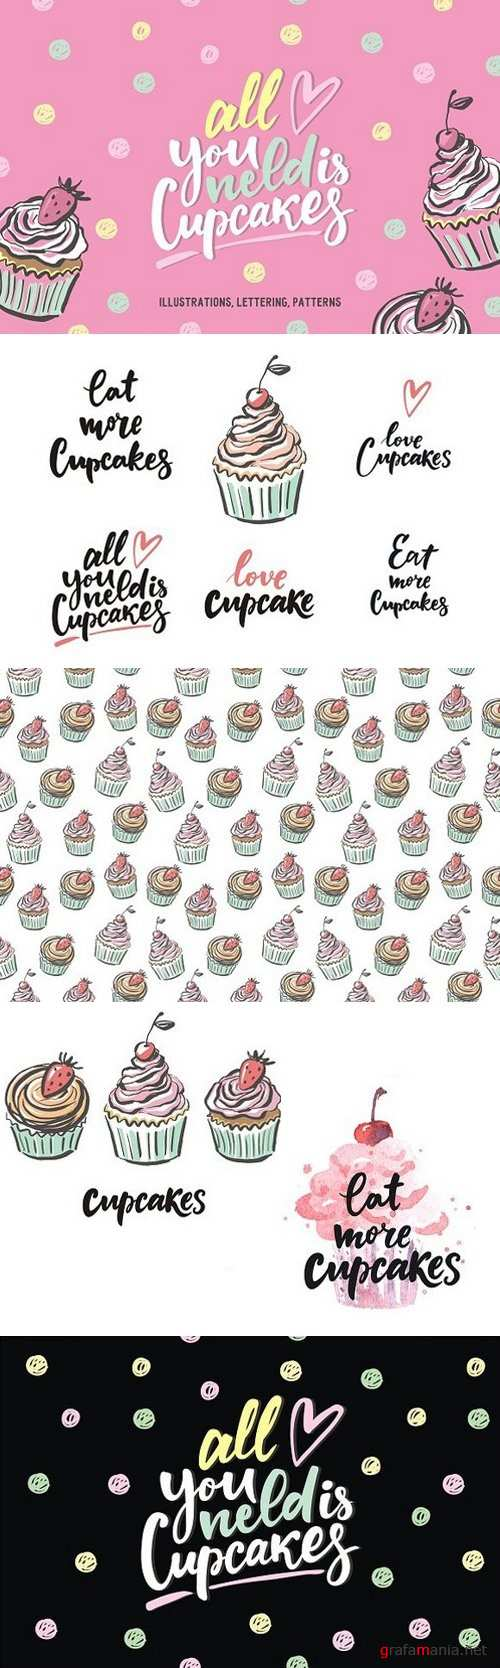 Cupcake pattern, lettering, cards - 1226937